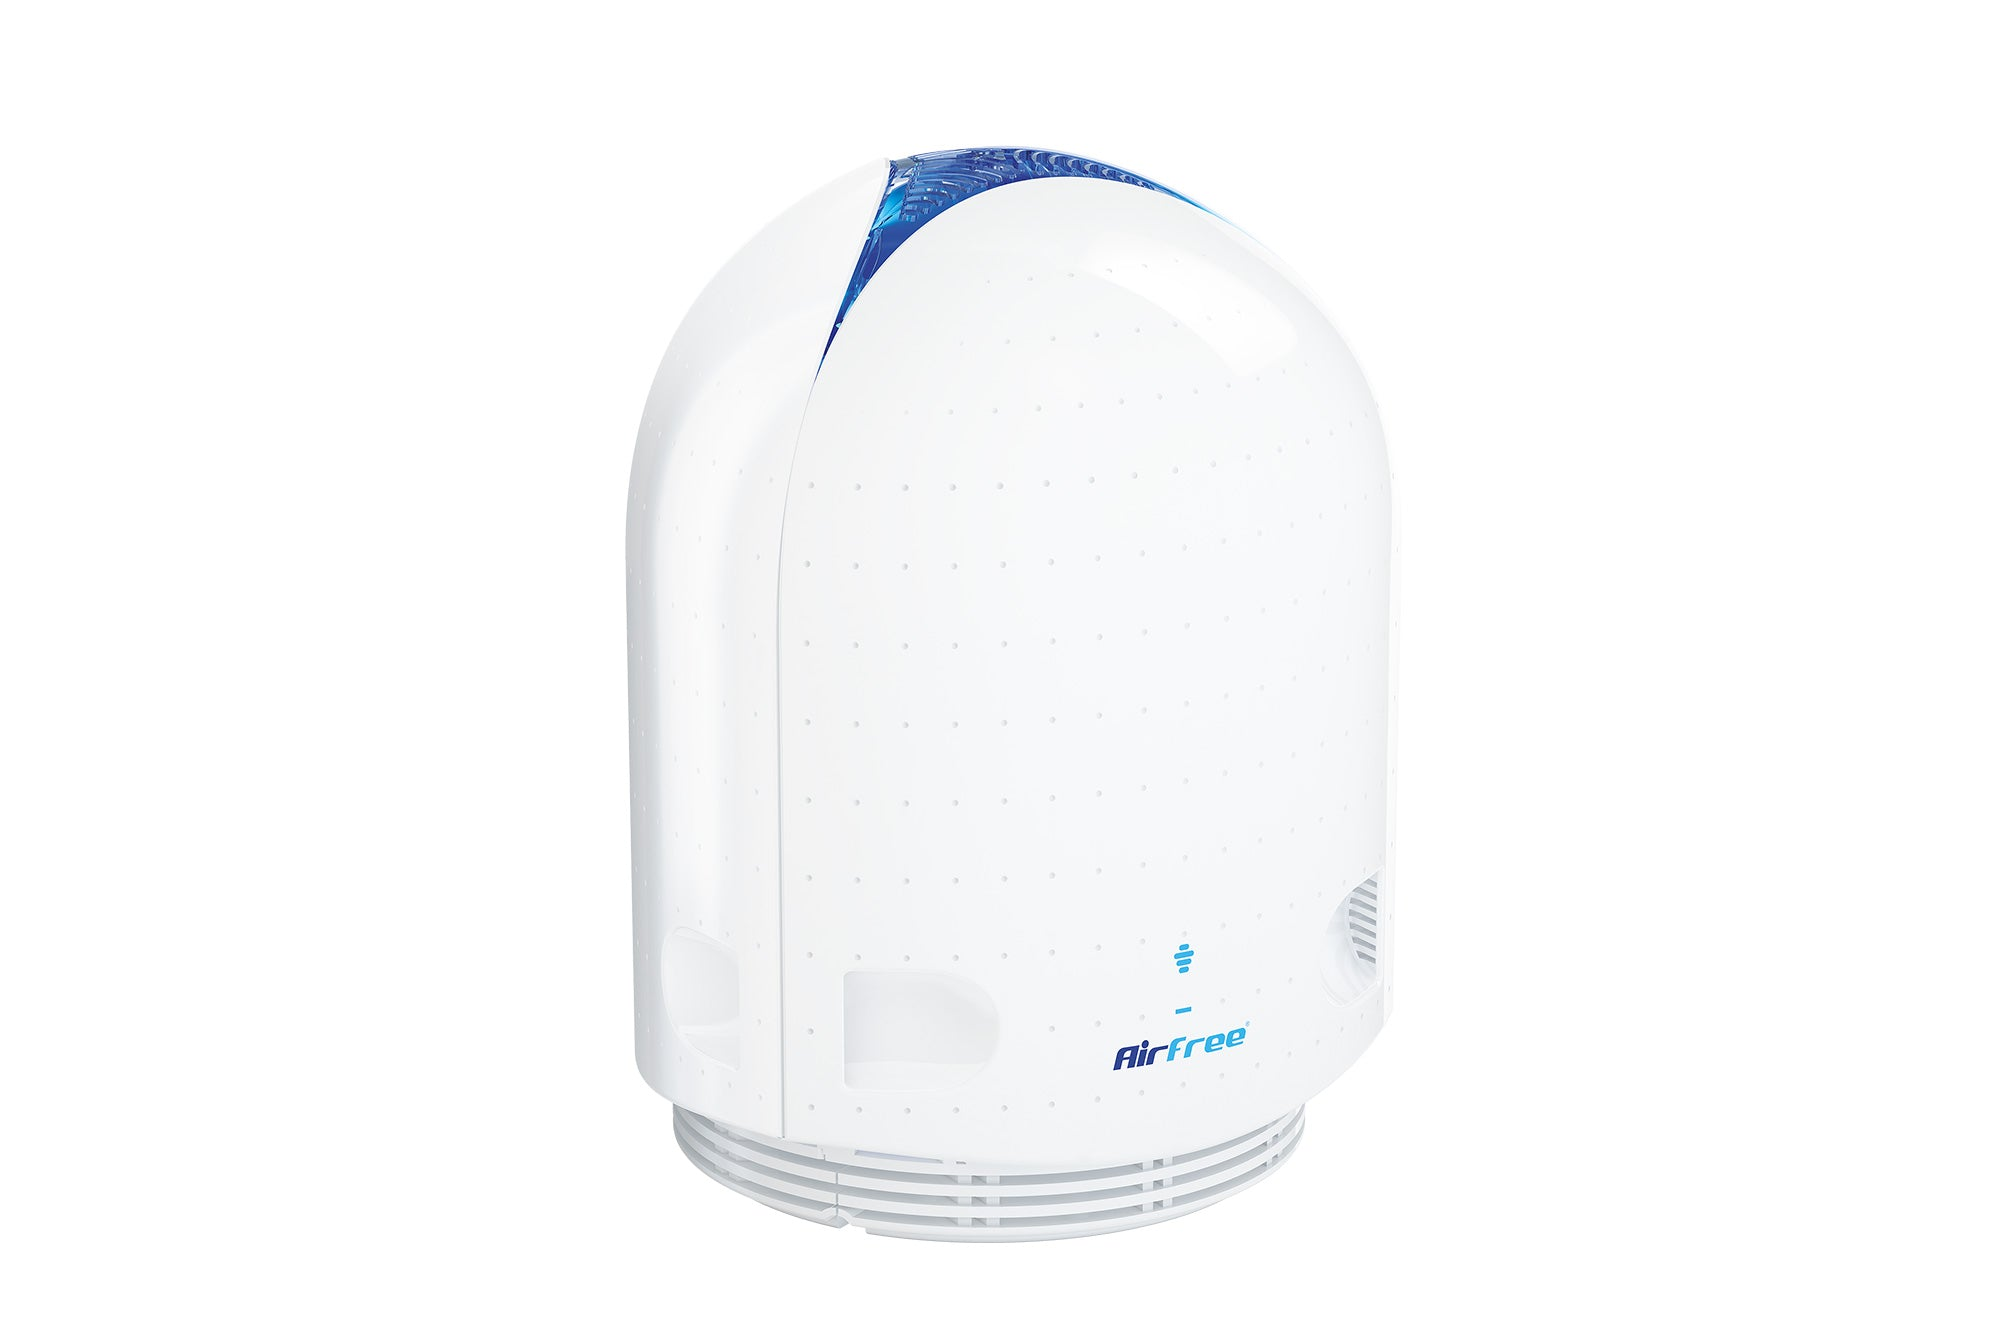 AirPurifier AirFree P1000 Filterless Air Purifier - White